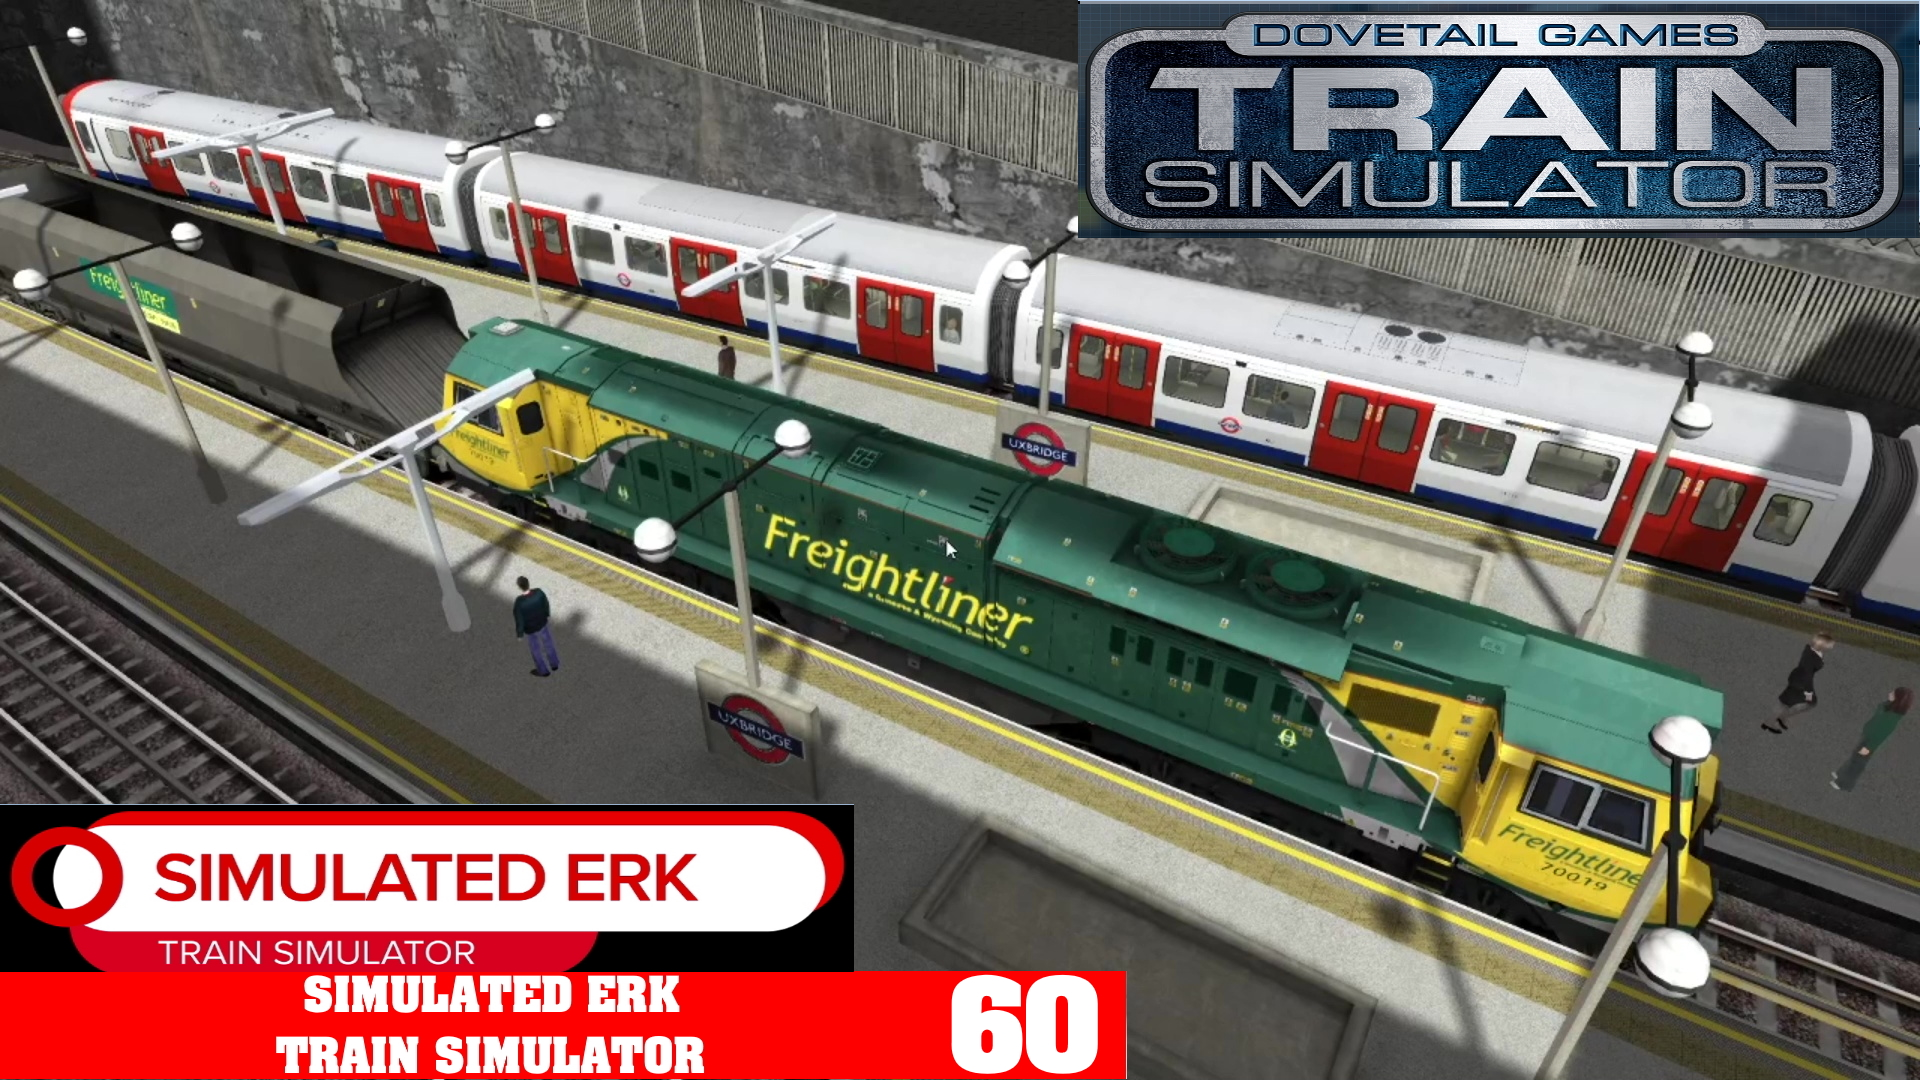 Simulated Erk: Train Simulator episode 60 | London Underground Coal